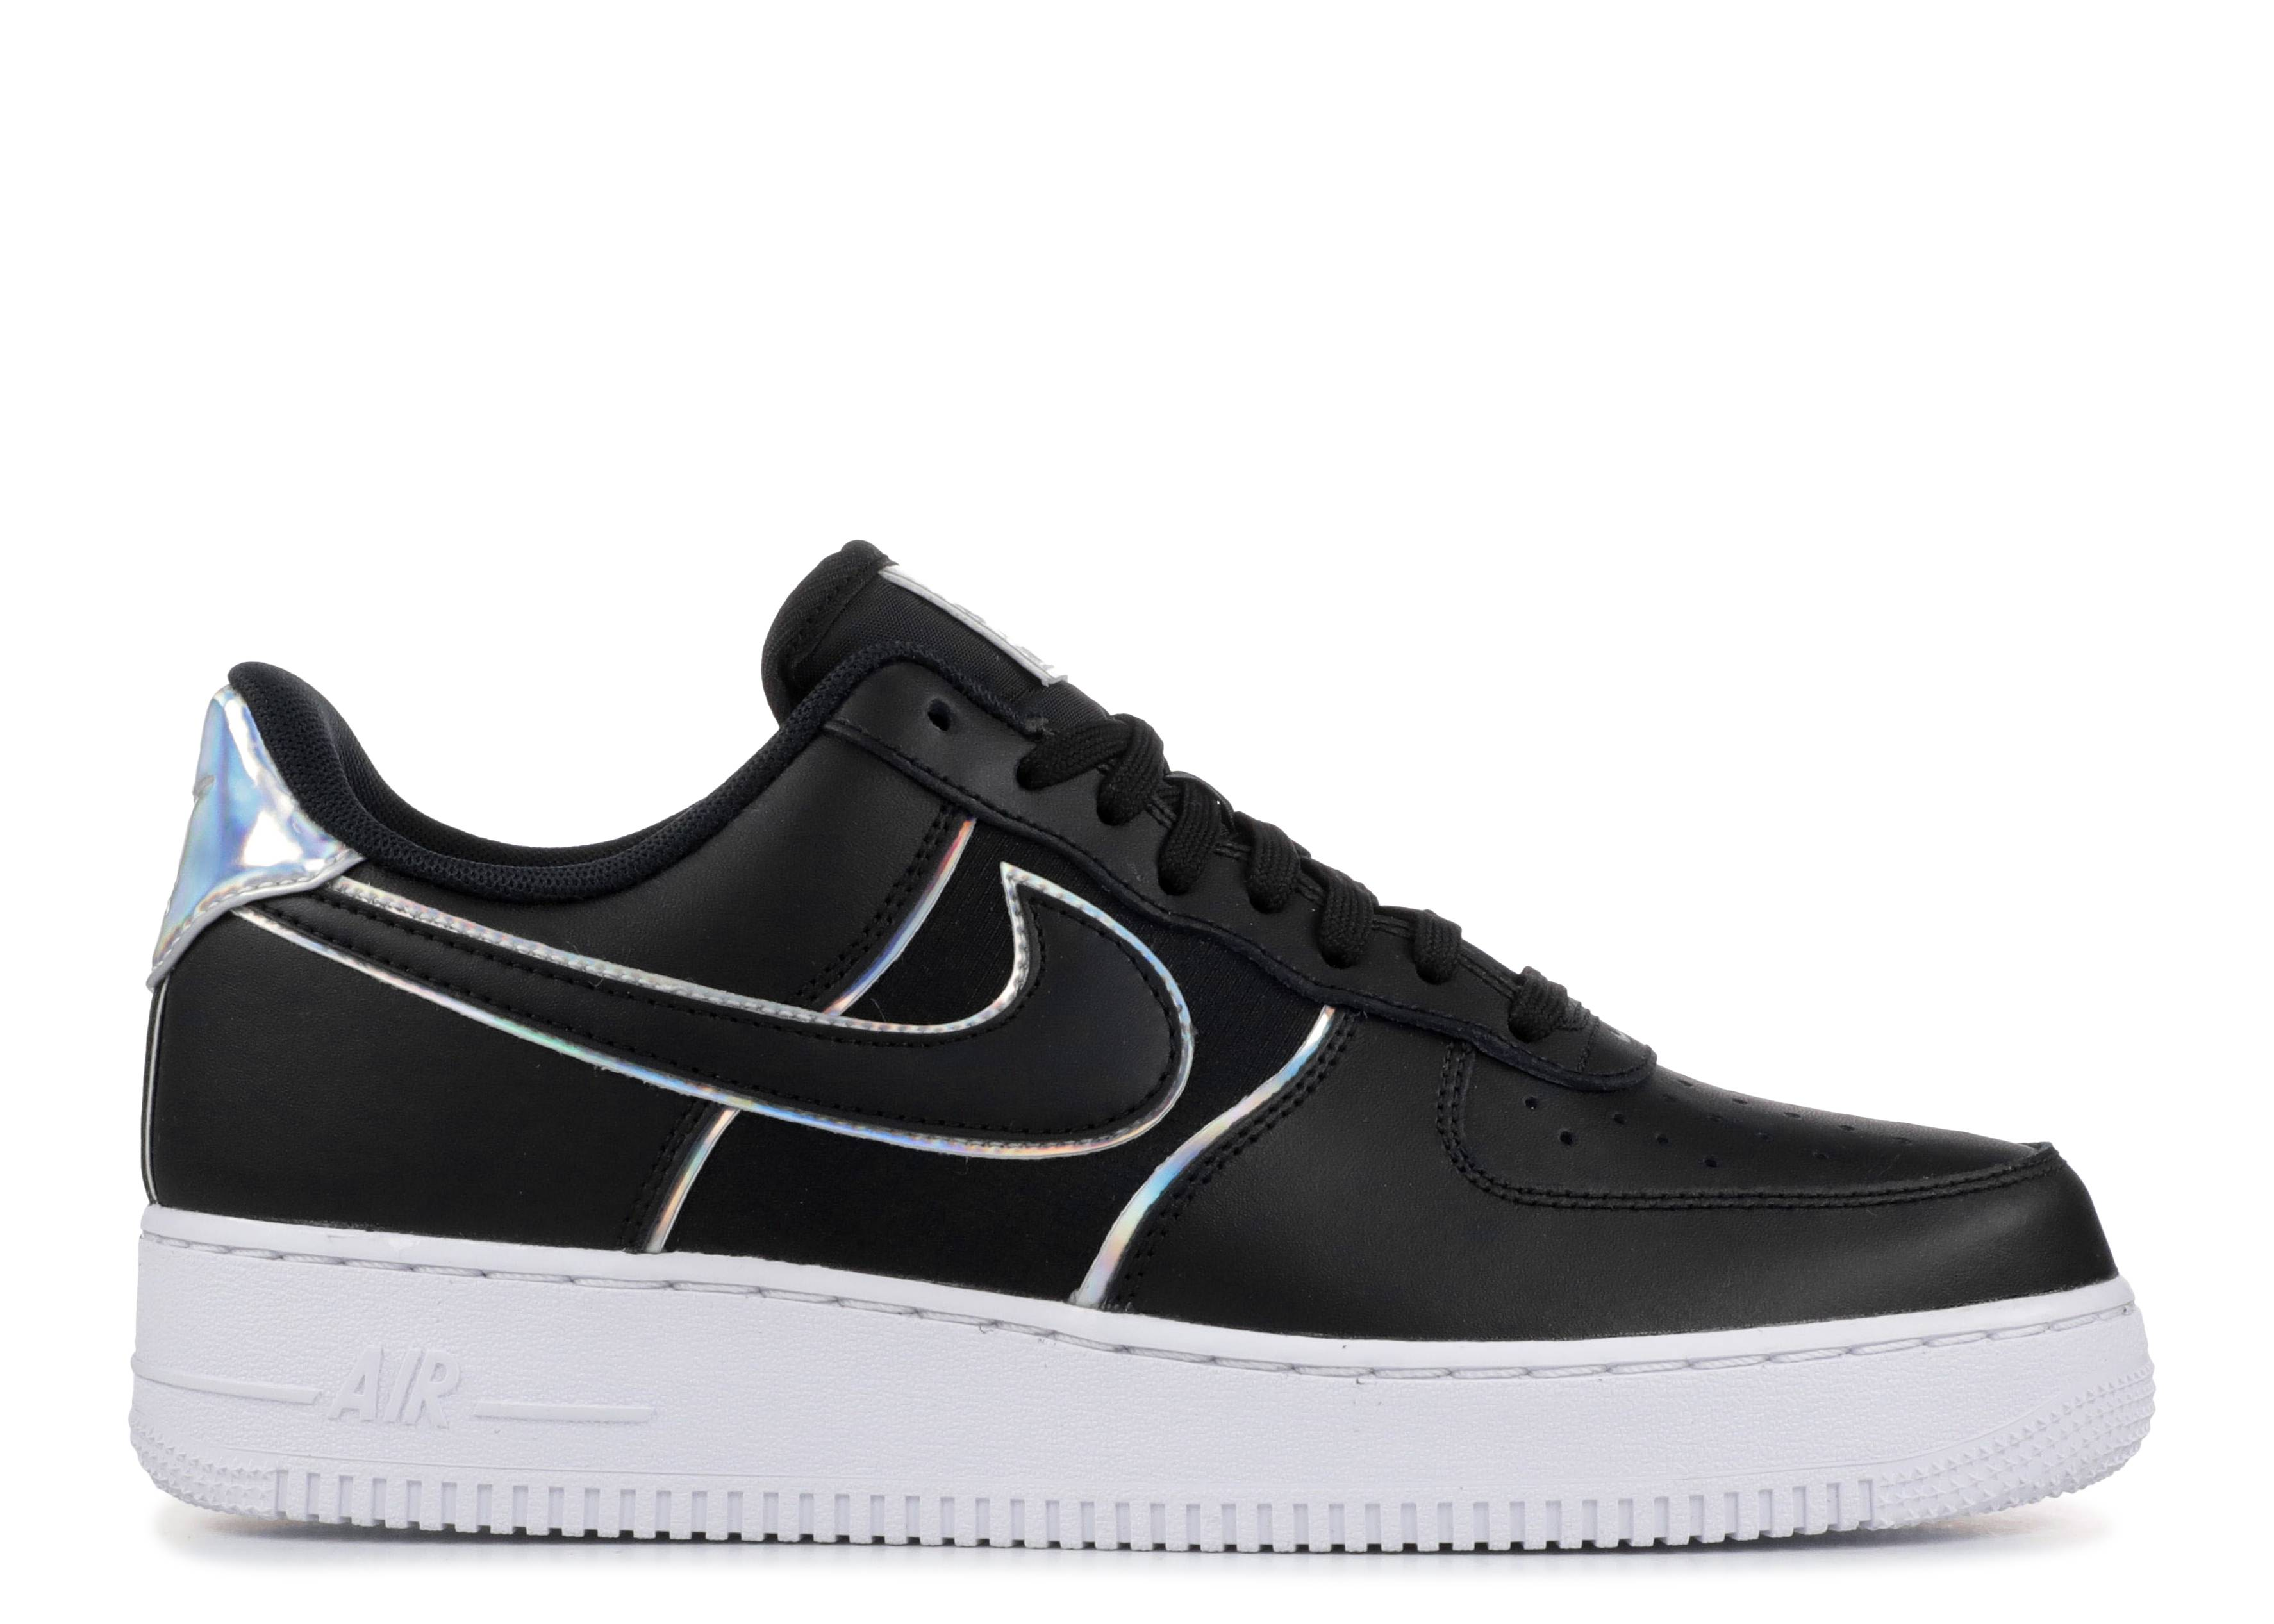 "Nike Air Force 1 Low '07 LV8 ""Black Iridescent Outline"" ""Black Iridescent Outline"""